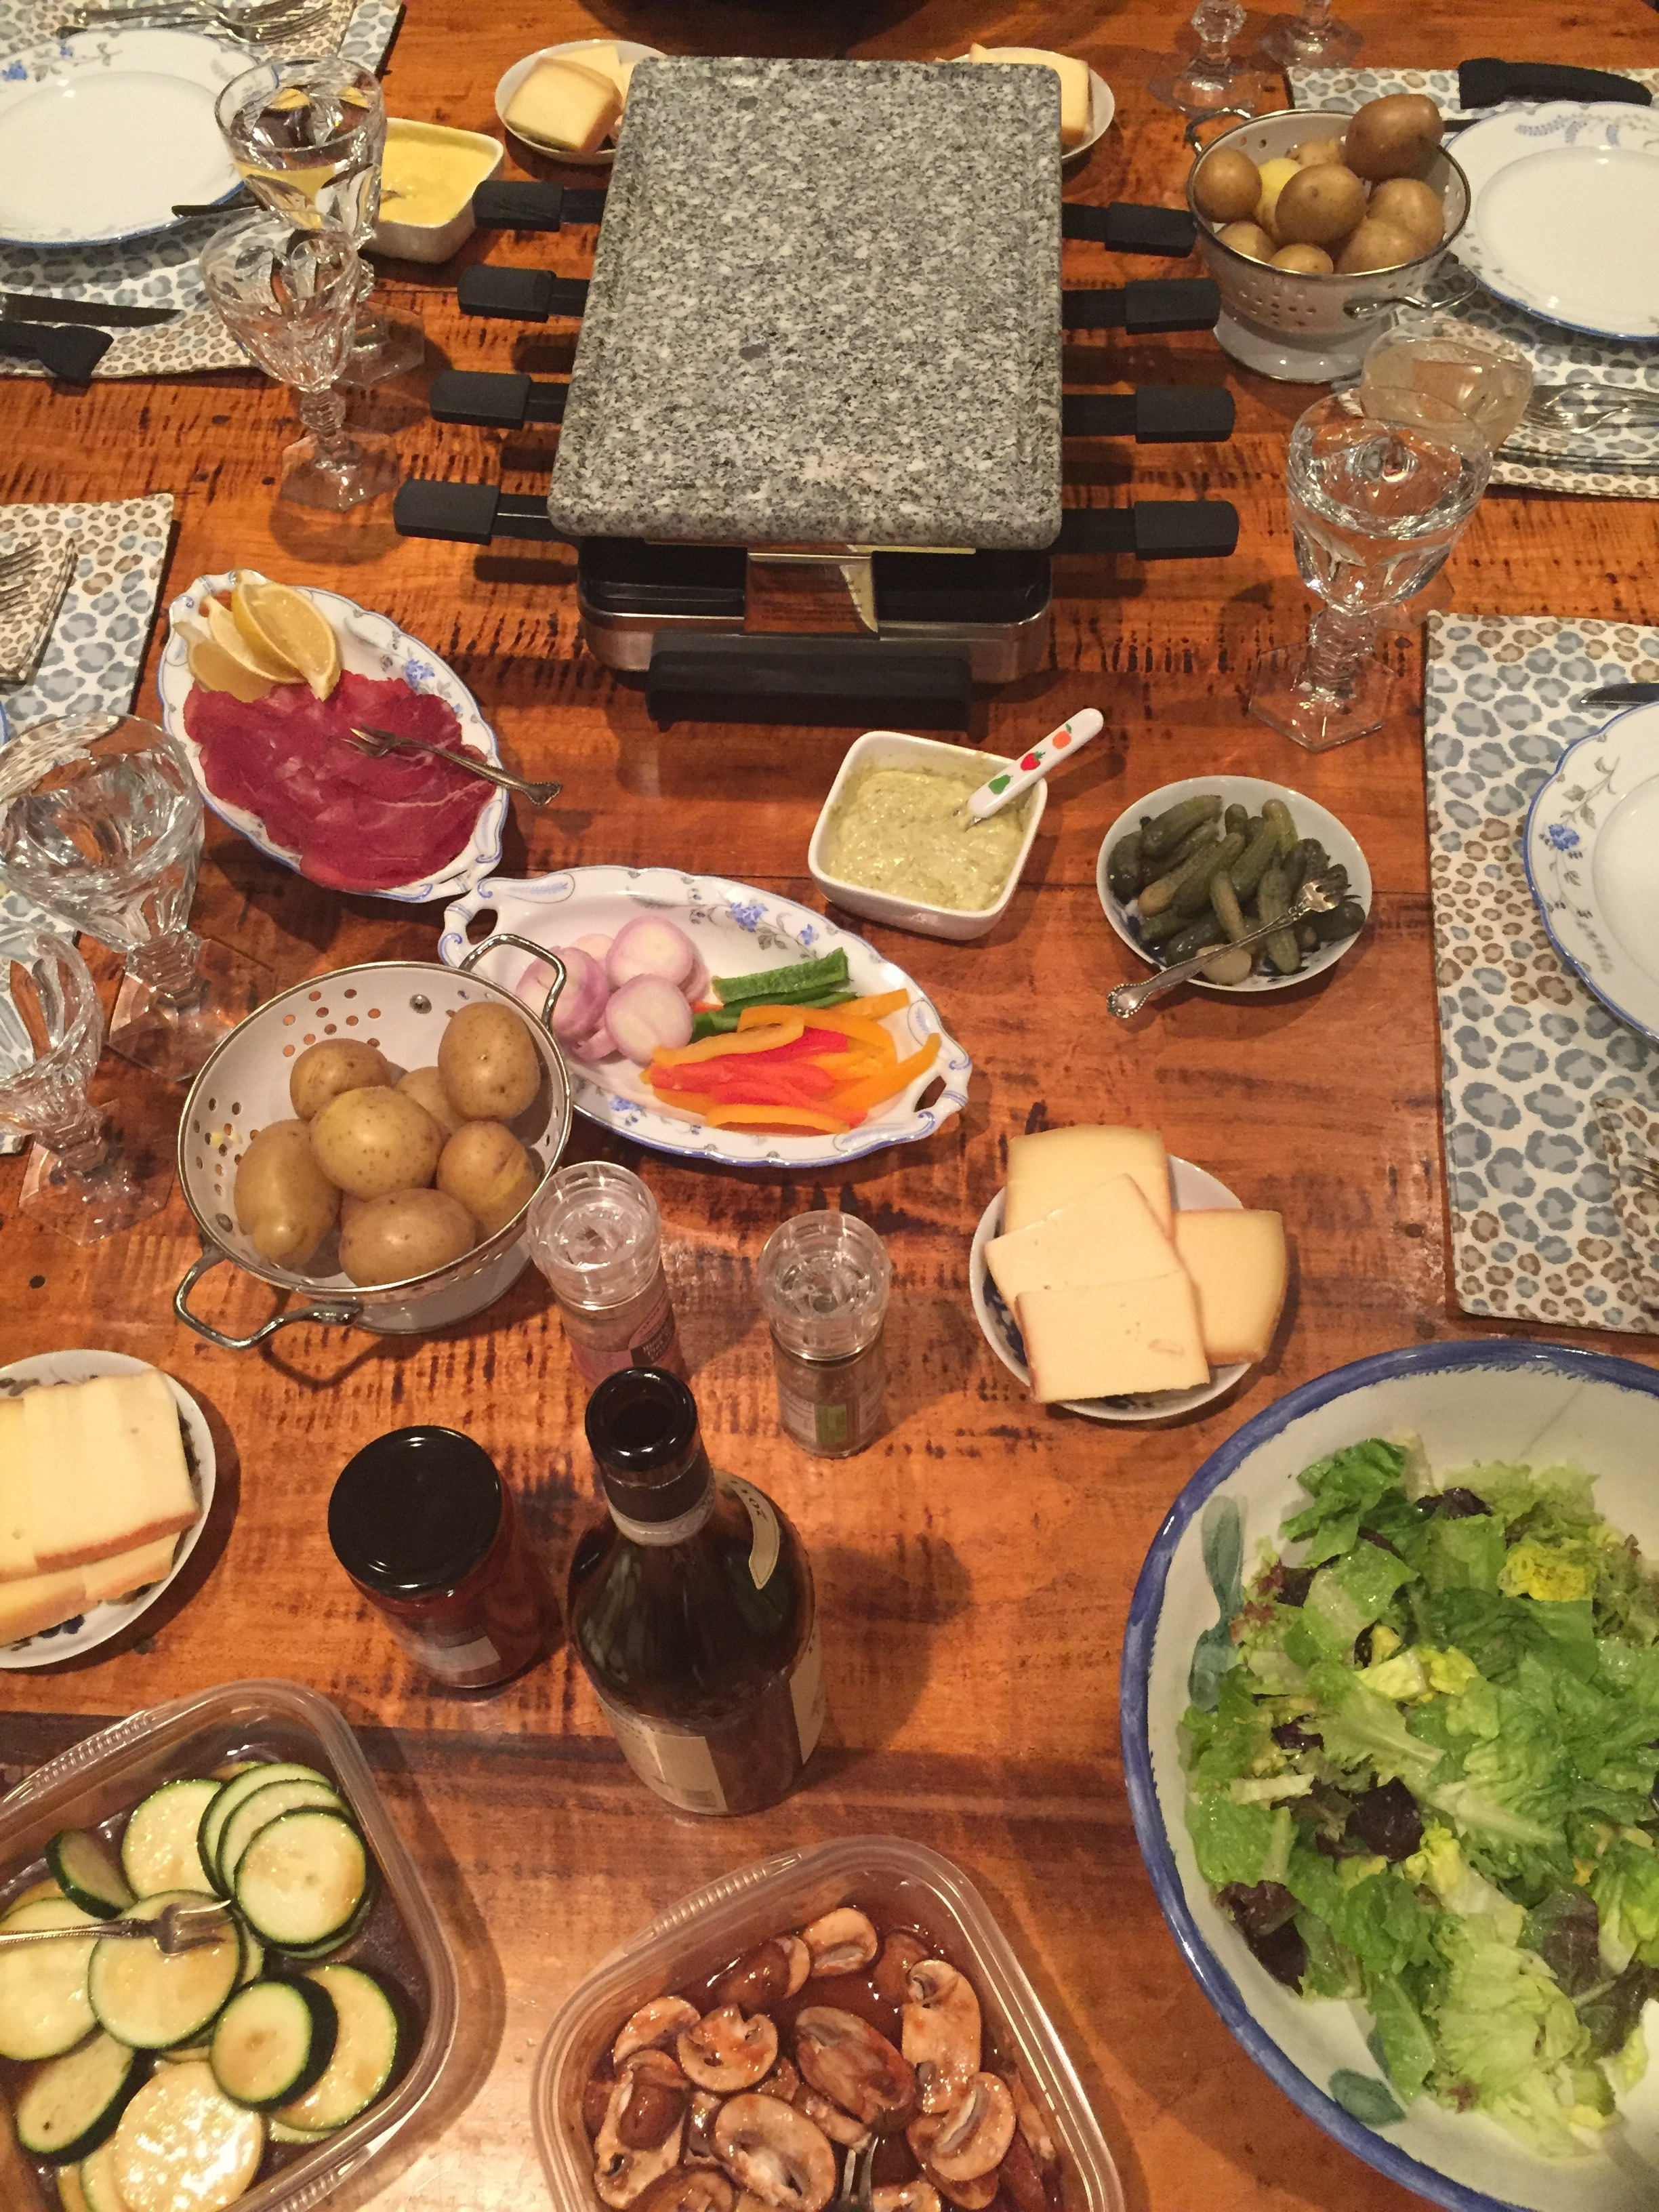 How to Have a Raclette Party - The Entertaining House